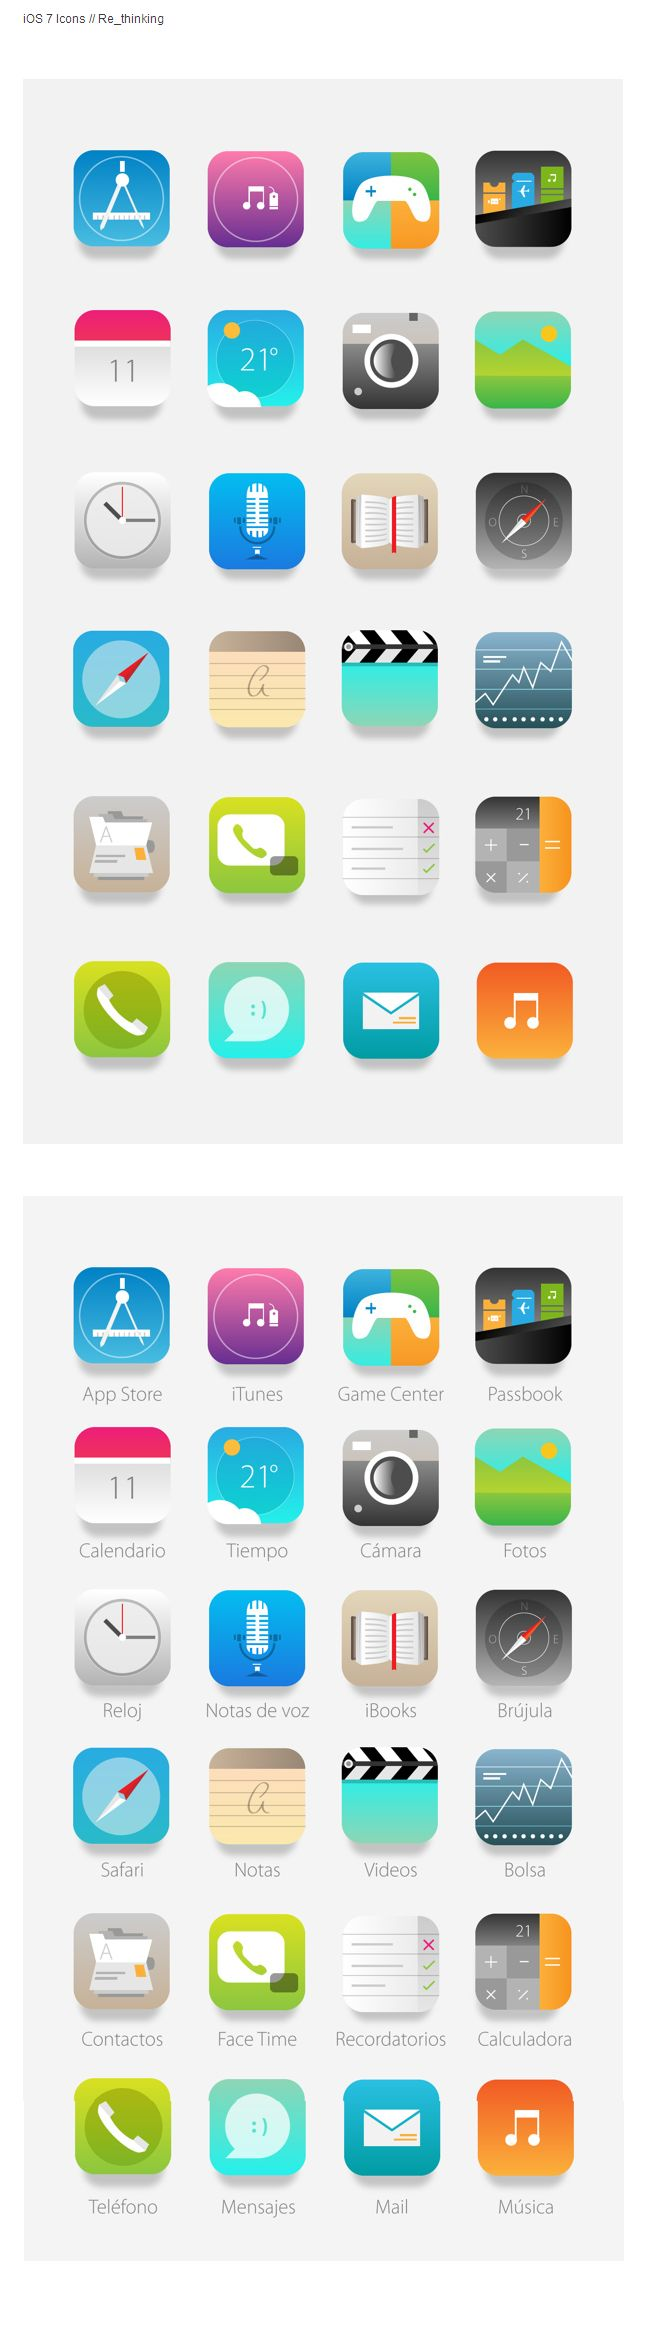 ios7 icons rethinking much better than original ones.   #ios7 #nikhil #iphone #icons #ui